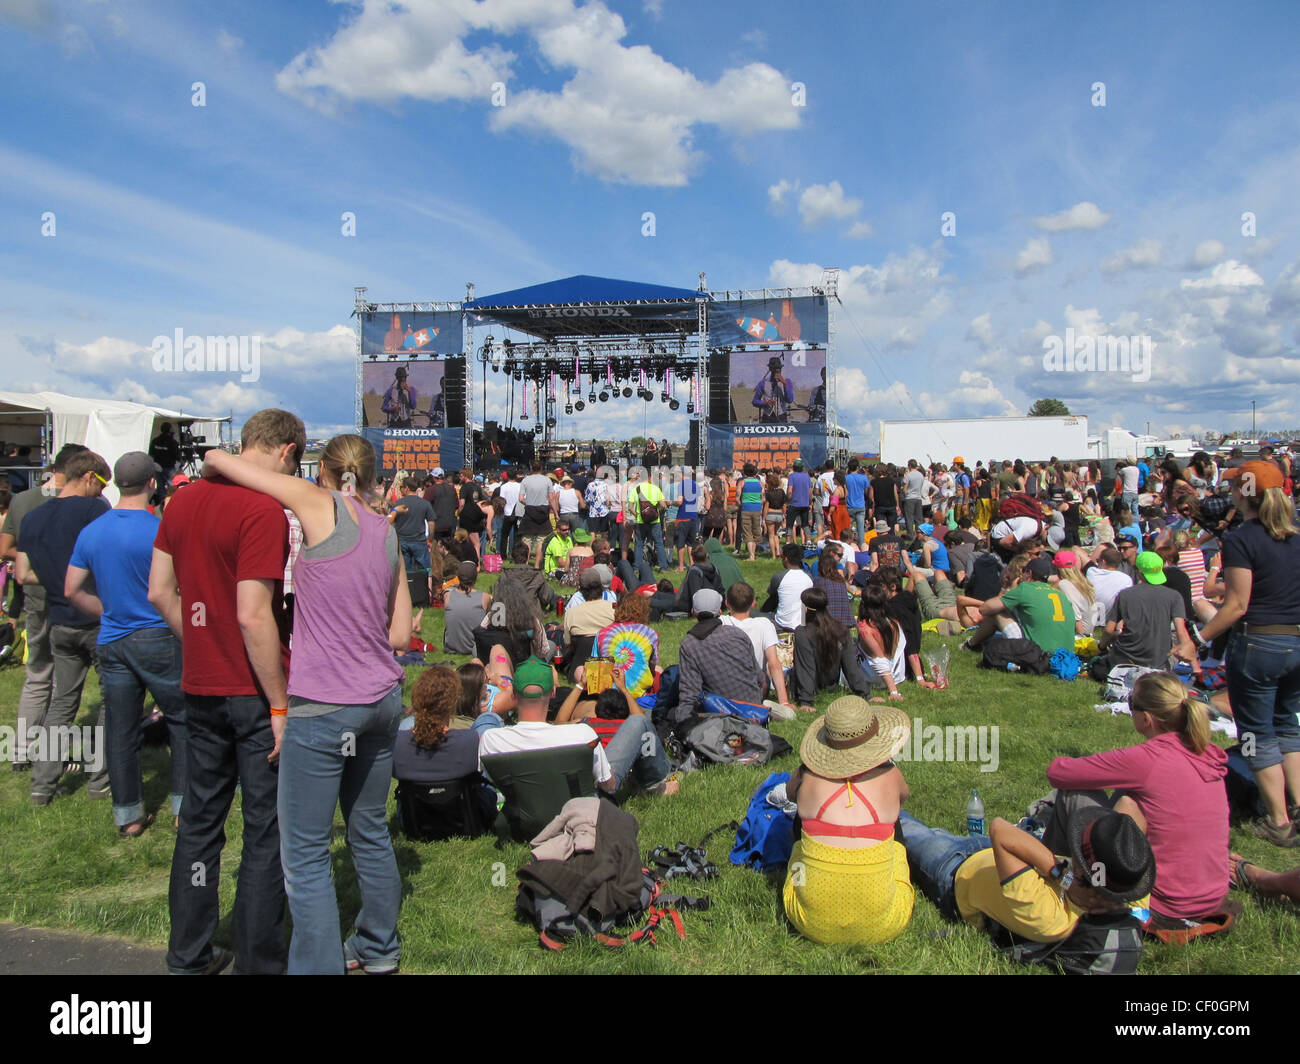 A crowd gathers at the Sasquatch Music Festival, in Washington State USA - Stock Image